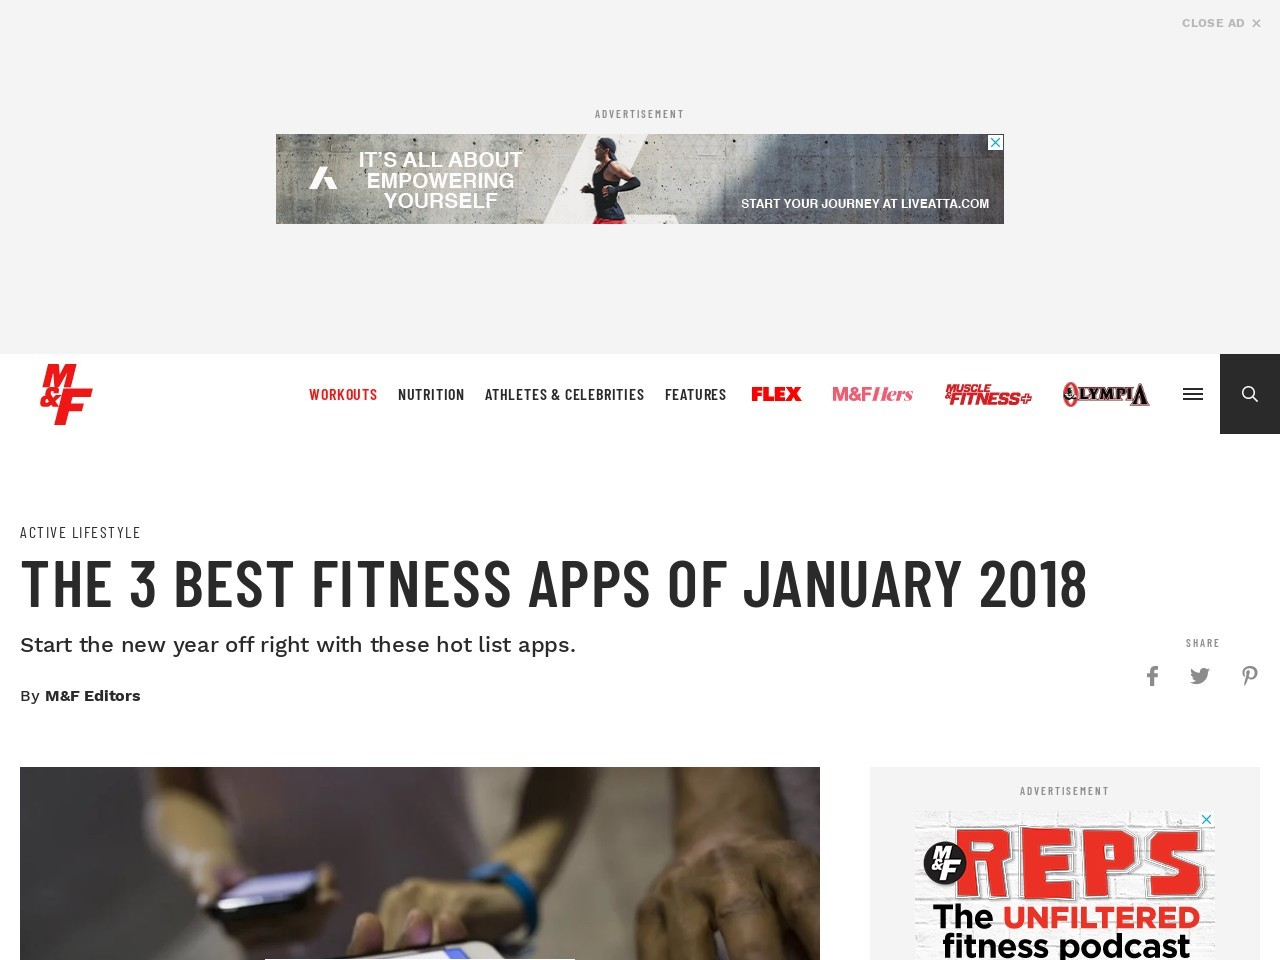 3 Best Fitness Apps of January 2018